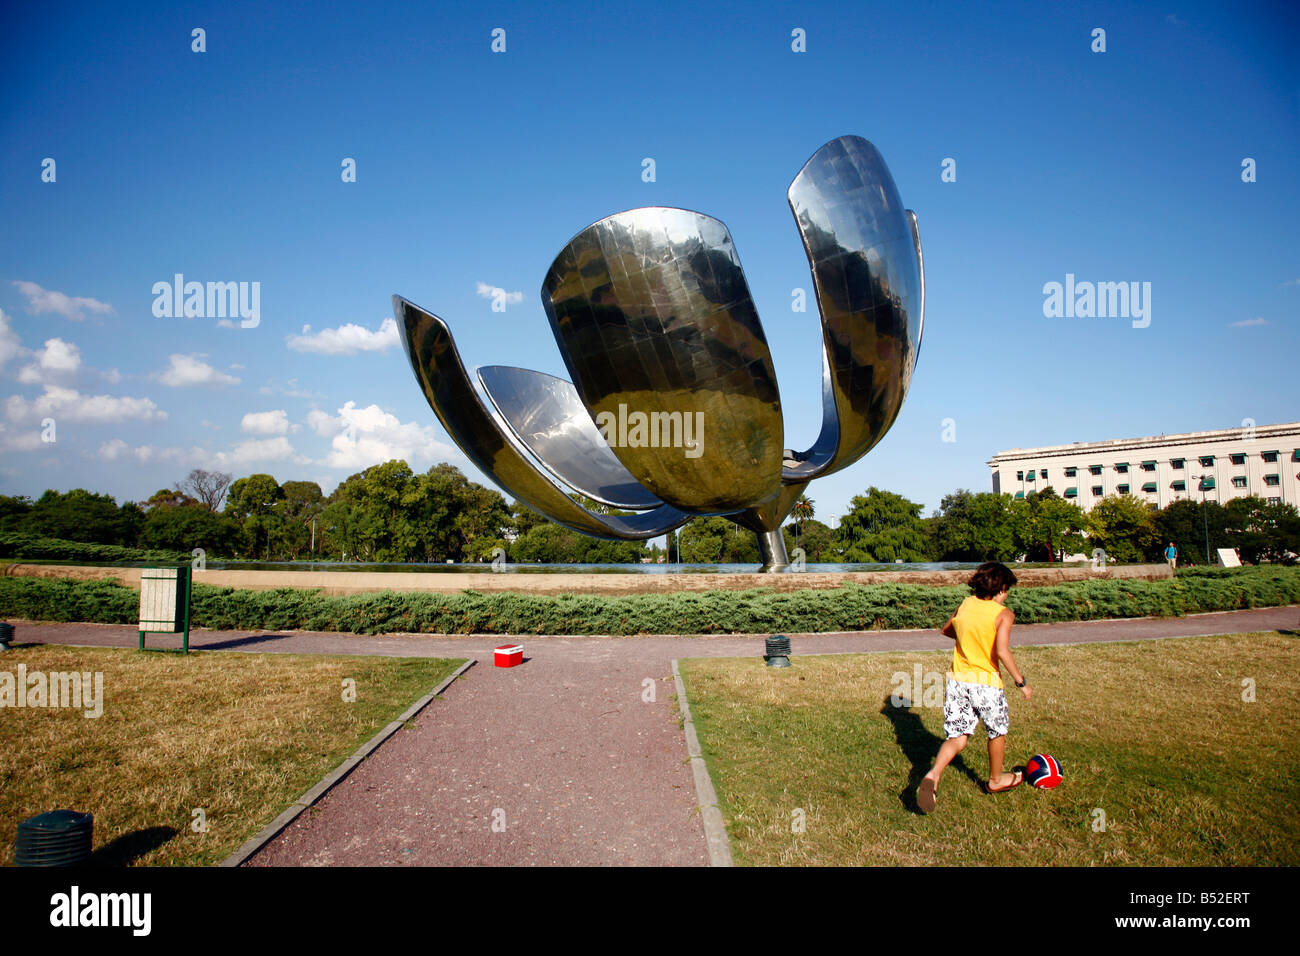 March 2008 - The Floralis Generica sculpture at Plaza Naciones Unidas Buenos Aires Argentina - Stock Image